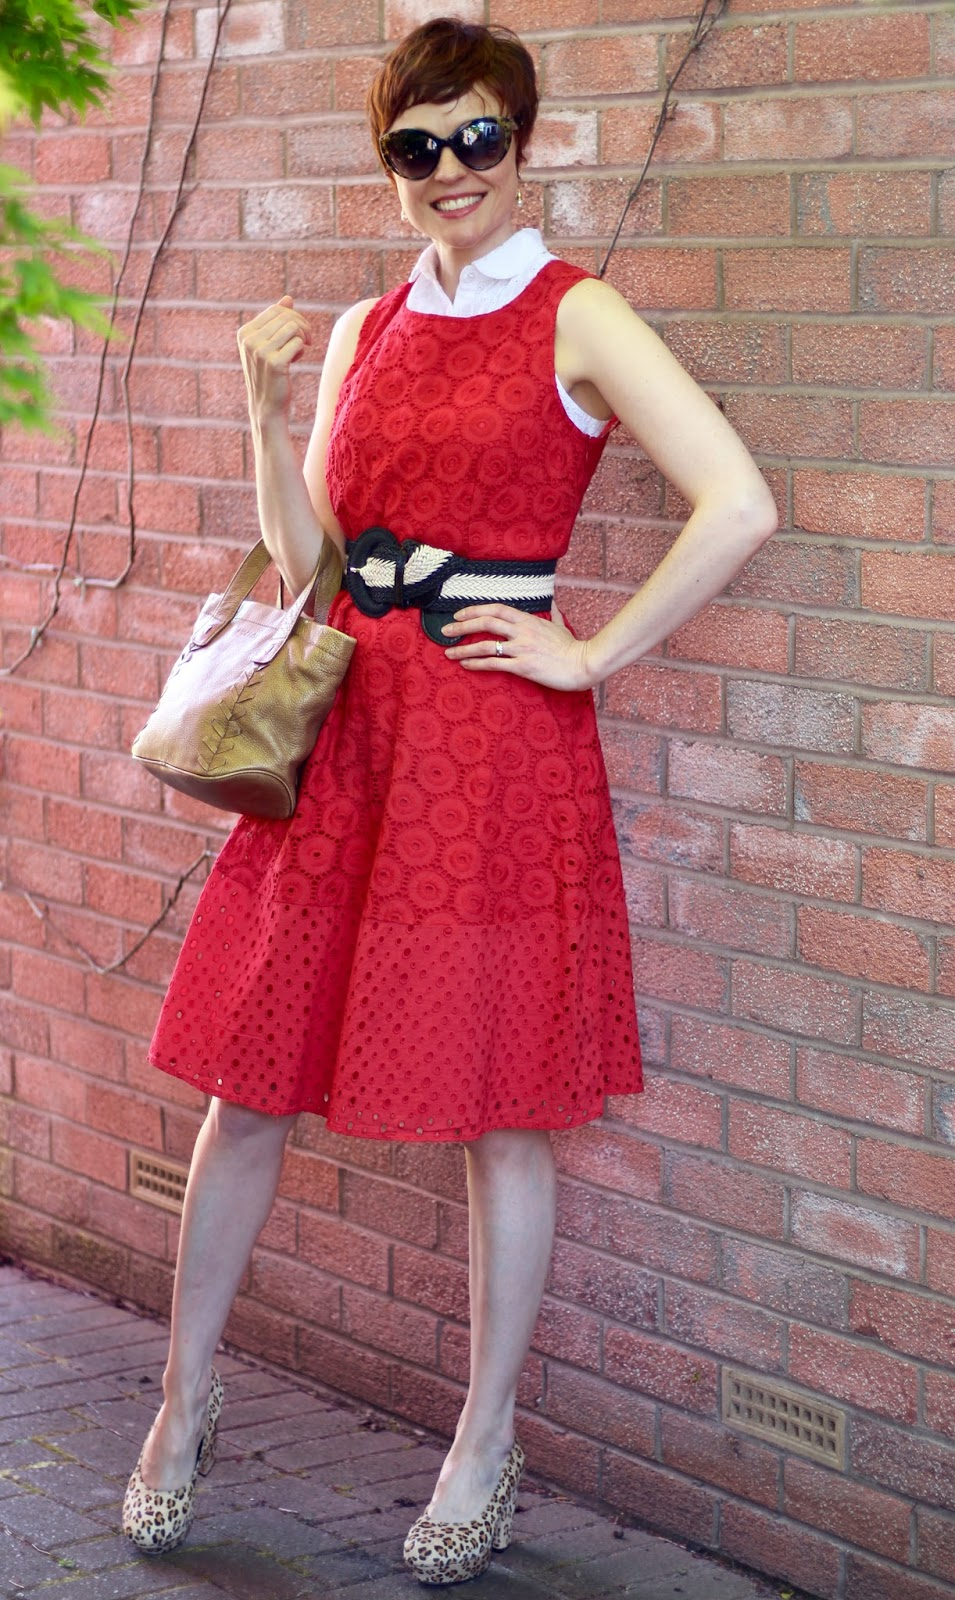 White sleeveless shirt under a red dress, leopard platform shoes & Black& white belt | Over 40